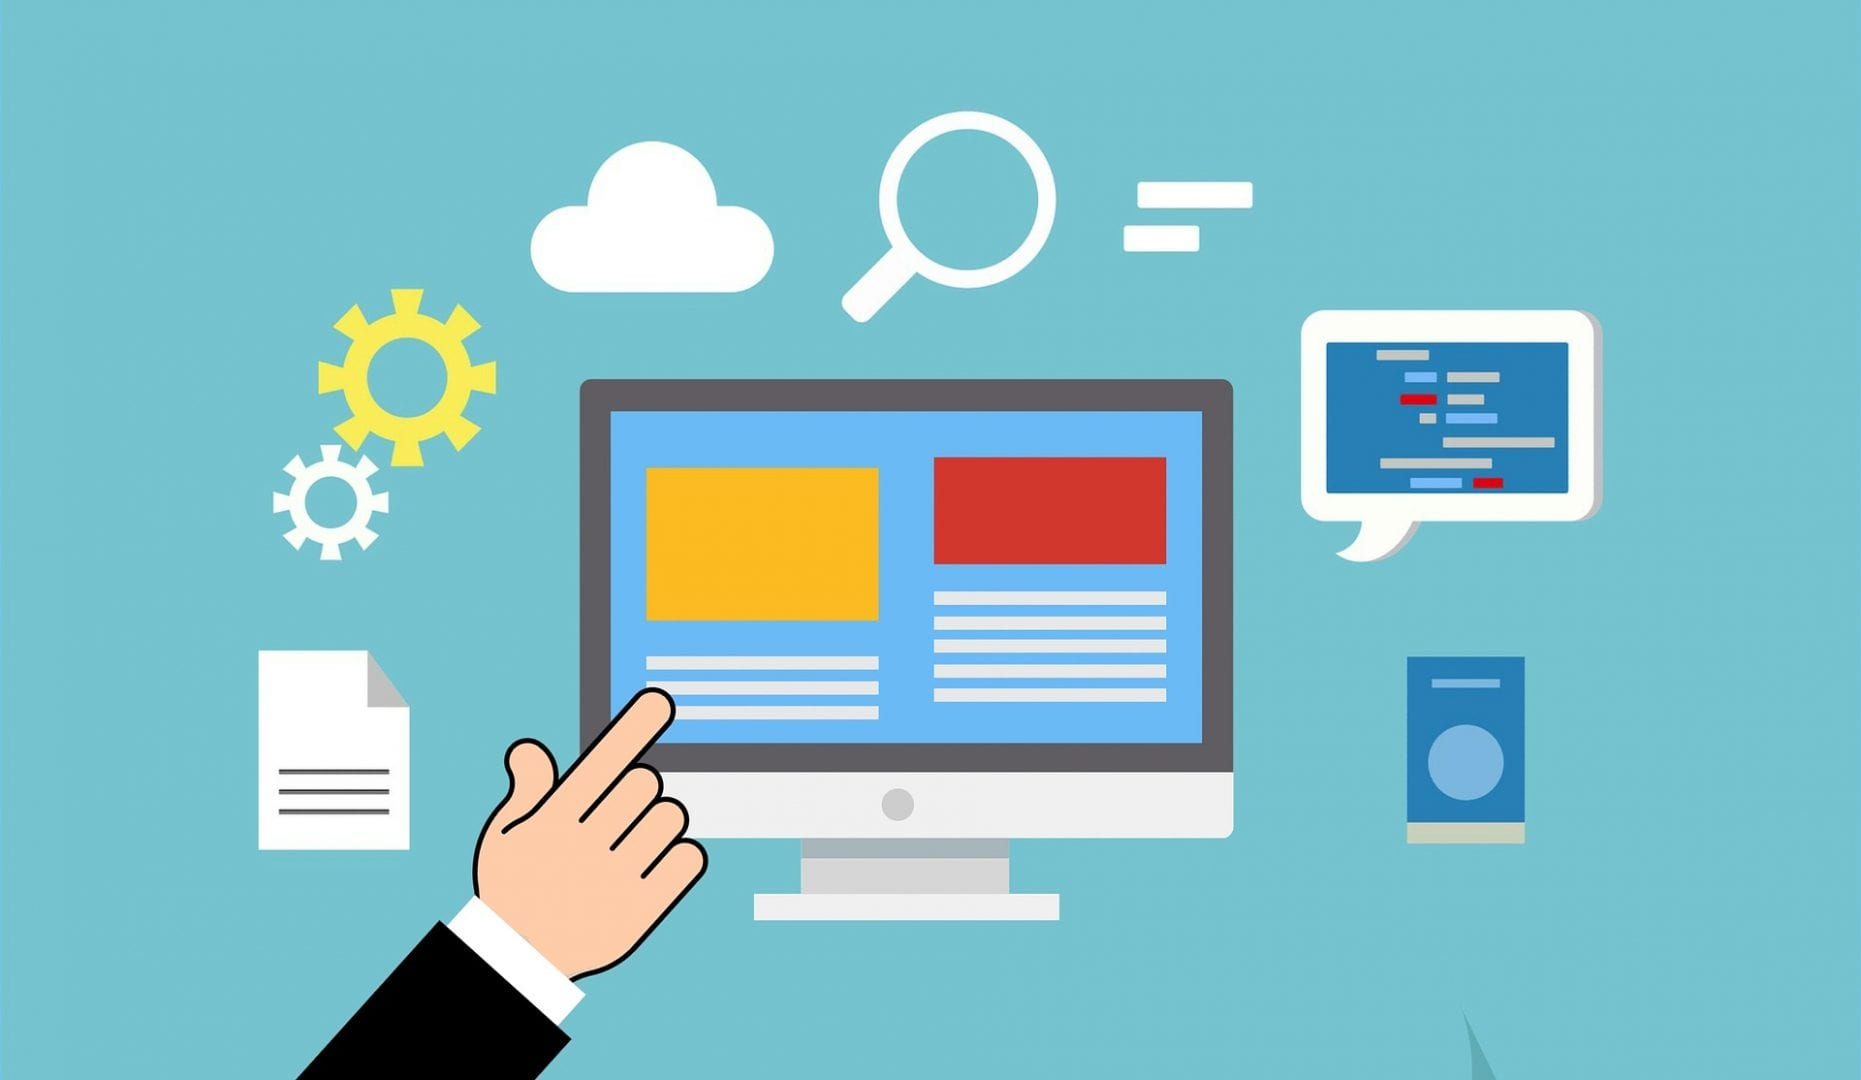 graphic of a hand pointing to a computer screen shwoing a mock up of a web page. Surrounding the computer screen is graphic representation of a piece of paper, two cogs, a cloud, a magnifying glass, and a chat bubbble.